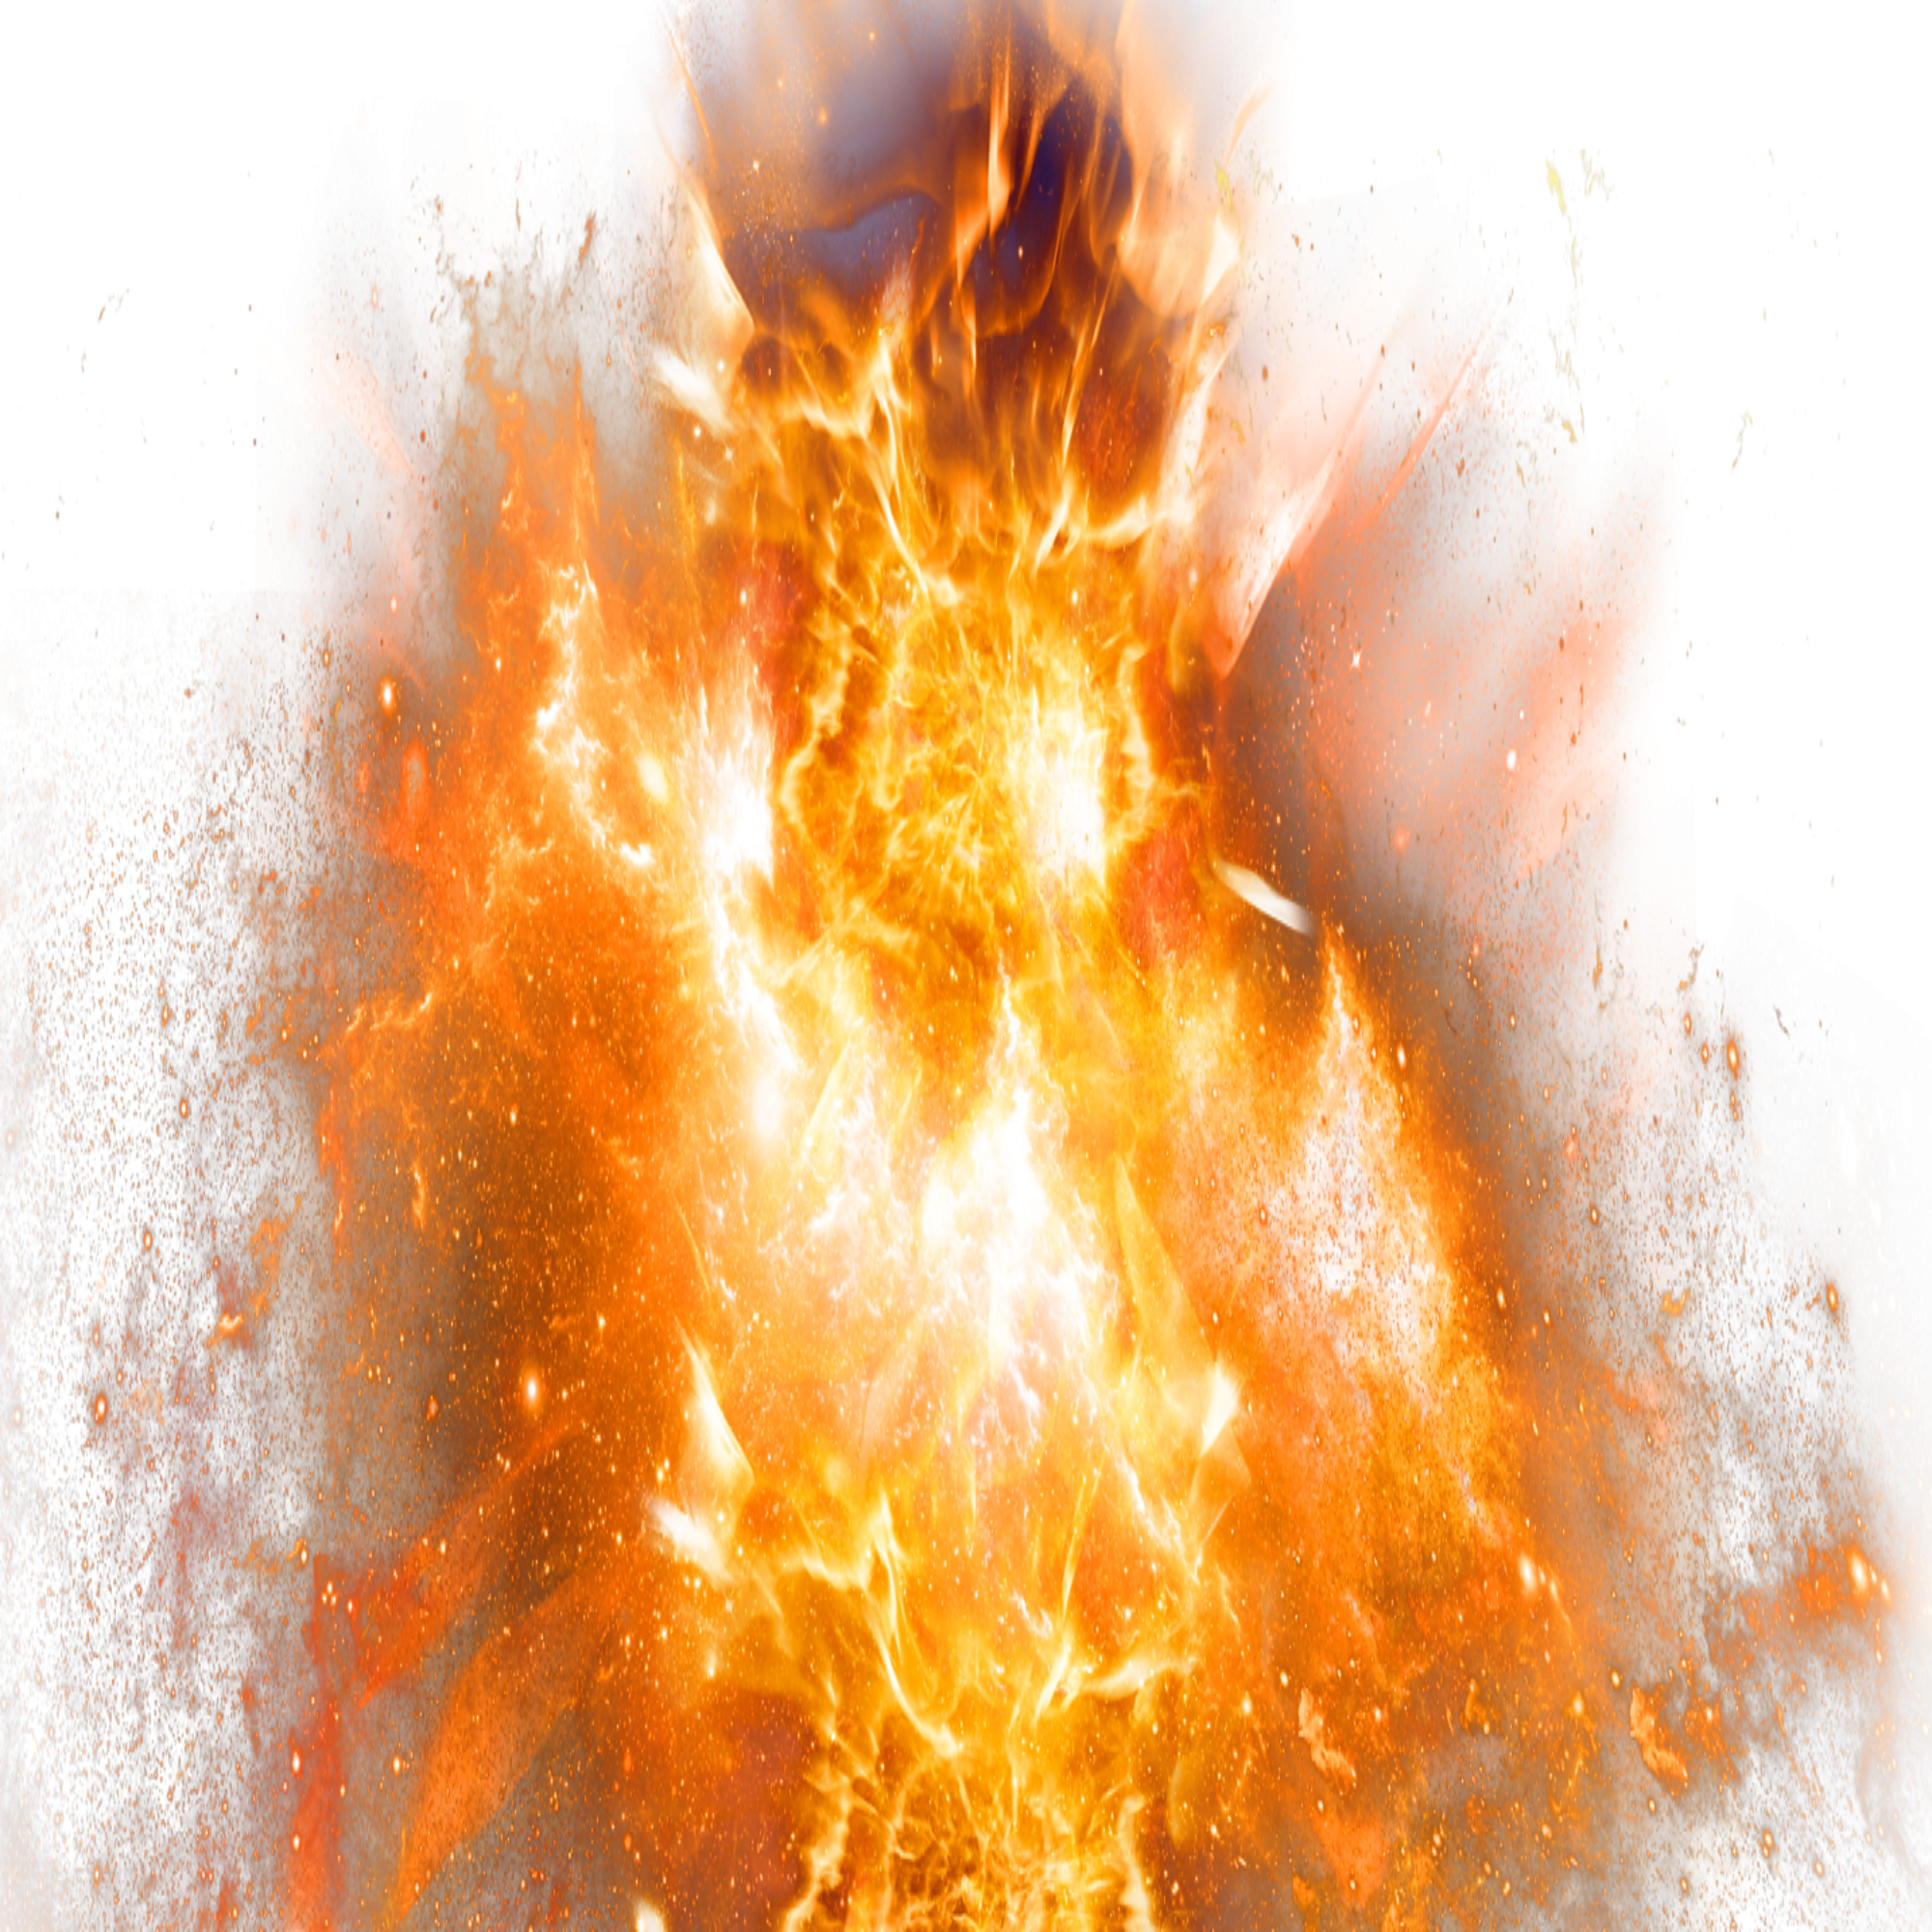 Explosion with Fire PNG